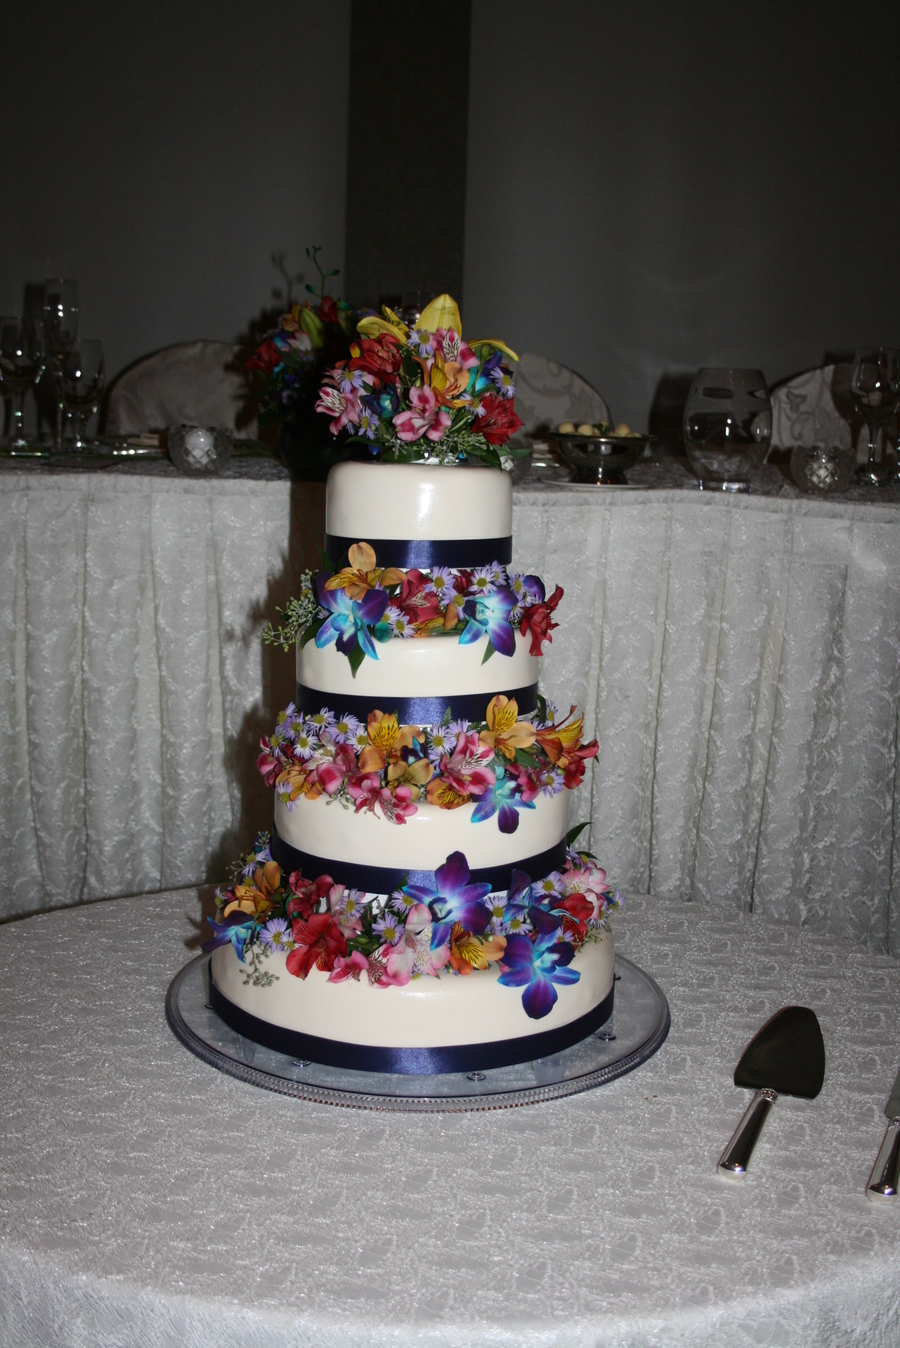 This Was An Amazing Cake For A Beautiful Bride I Loved The Real Flowers And The Floating Tiers on Cake Central